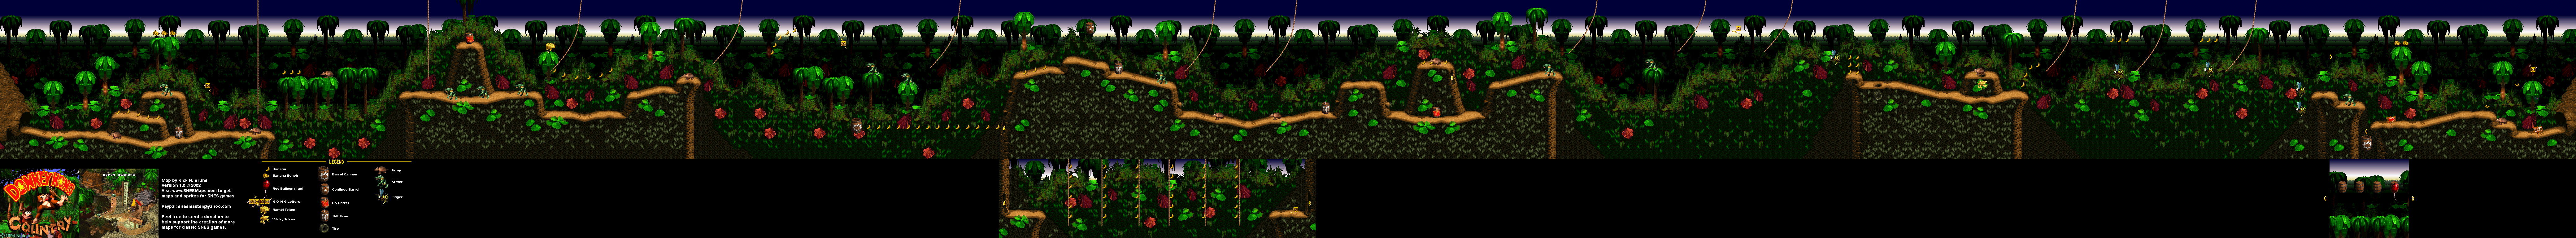 Donkey Kong Country - Level 2 - Ropey Rampage   GameDev: Level ... on